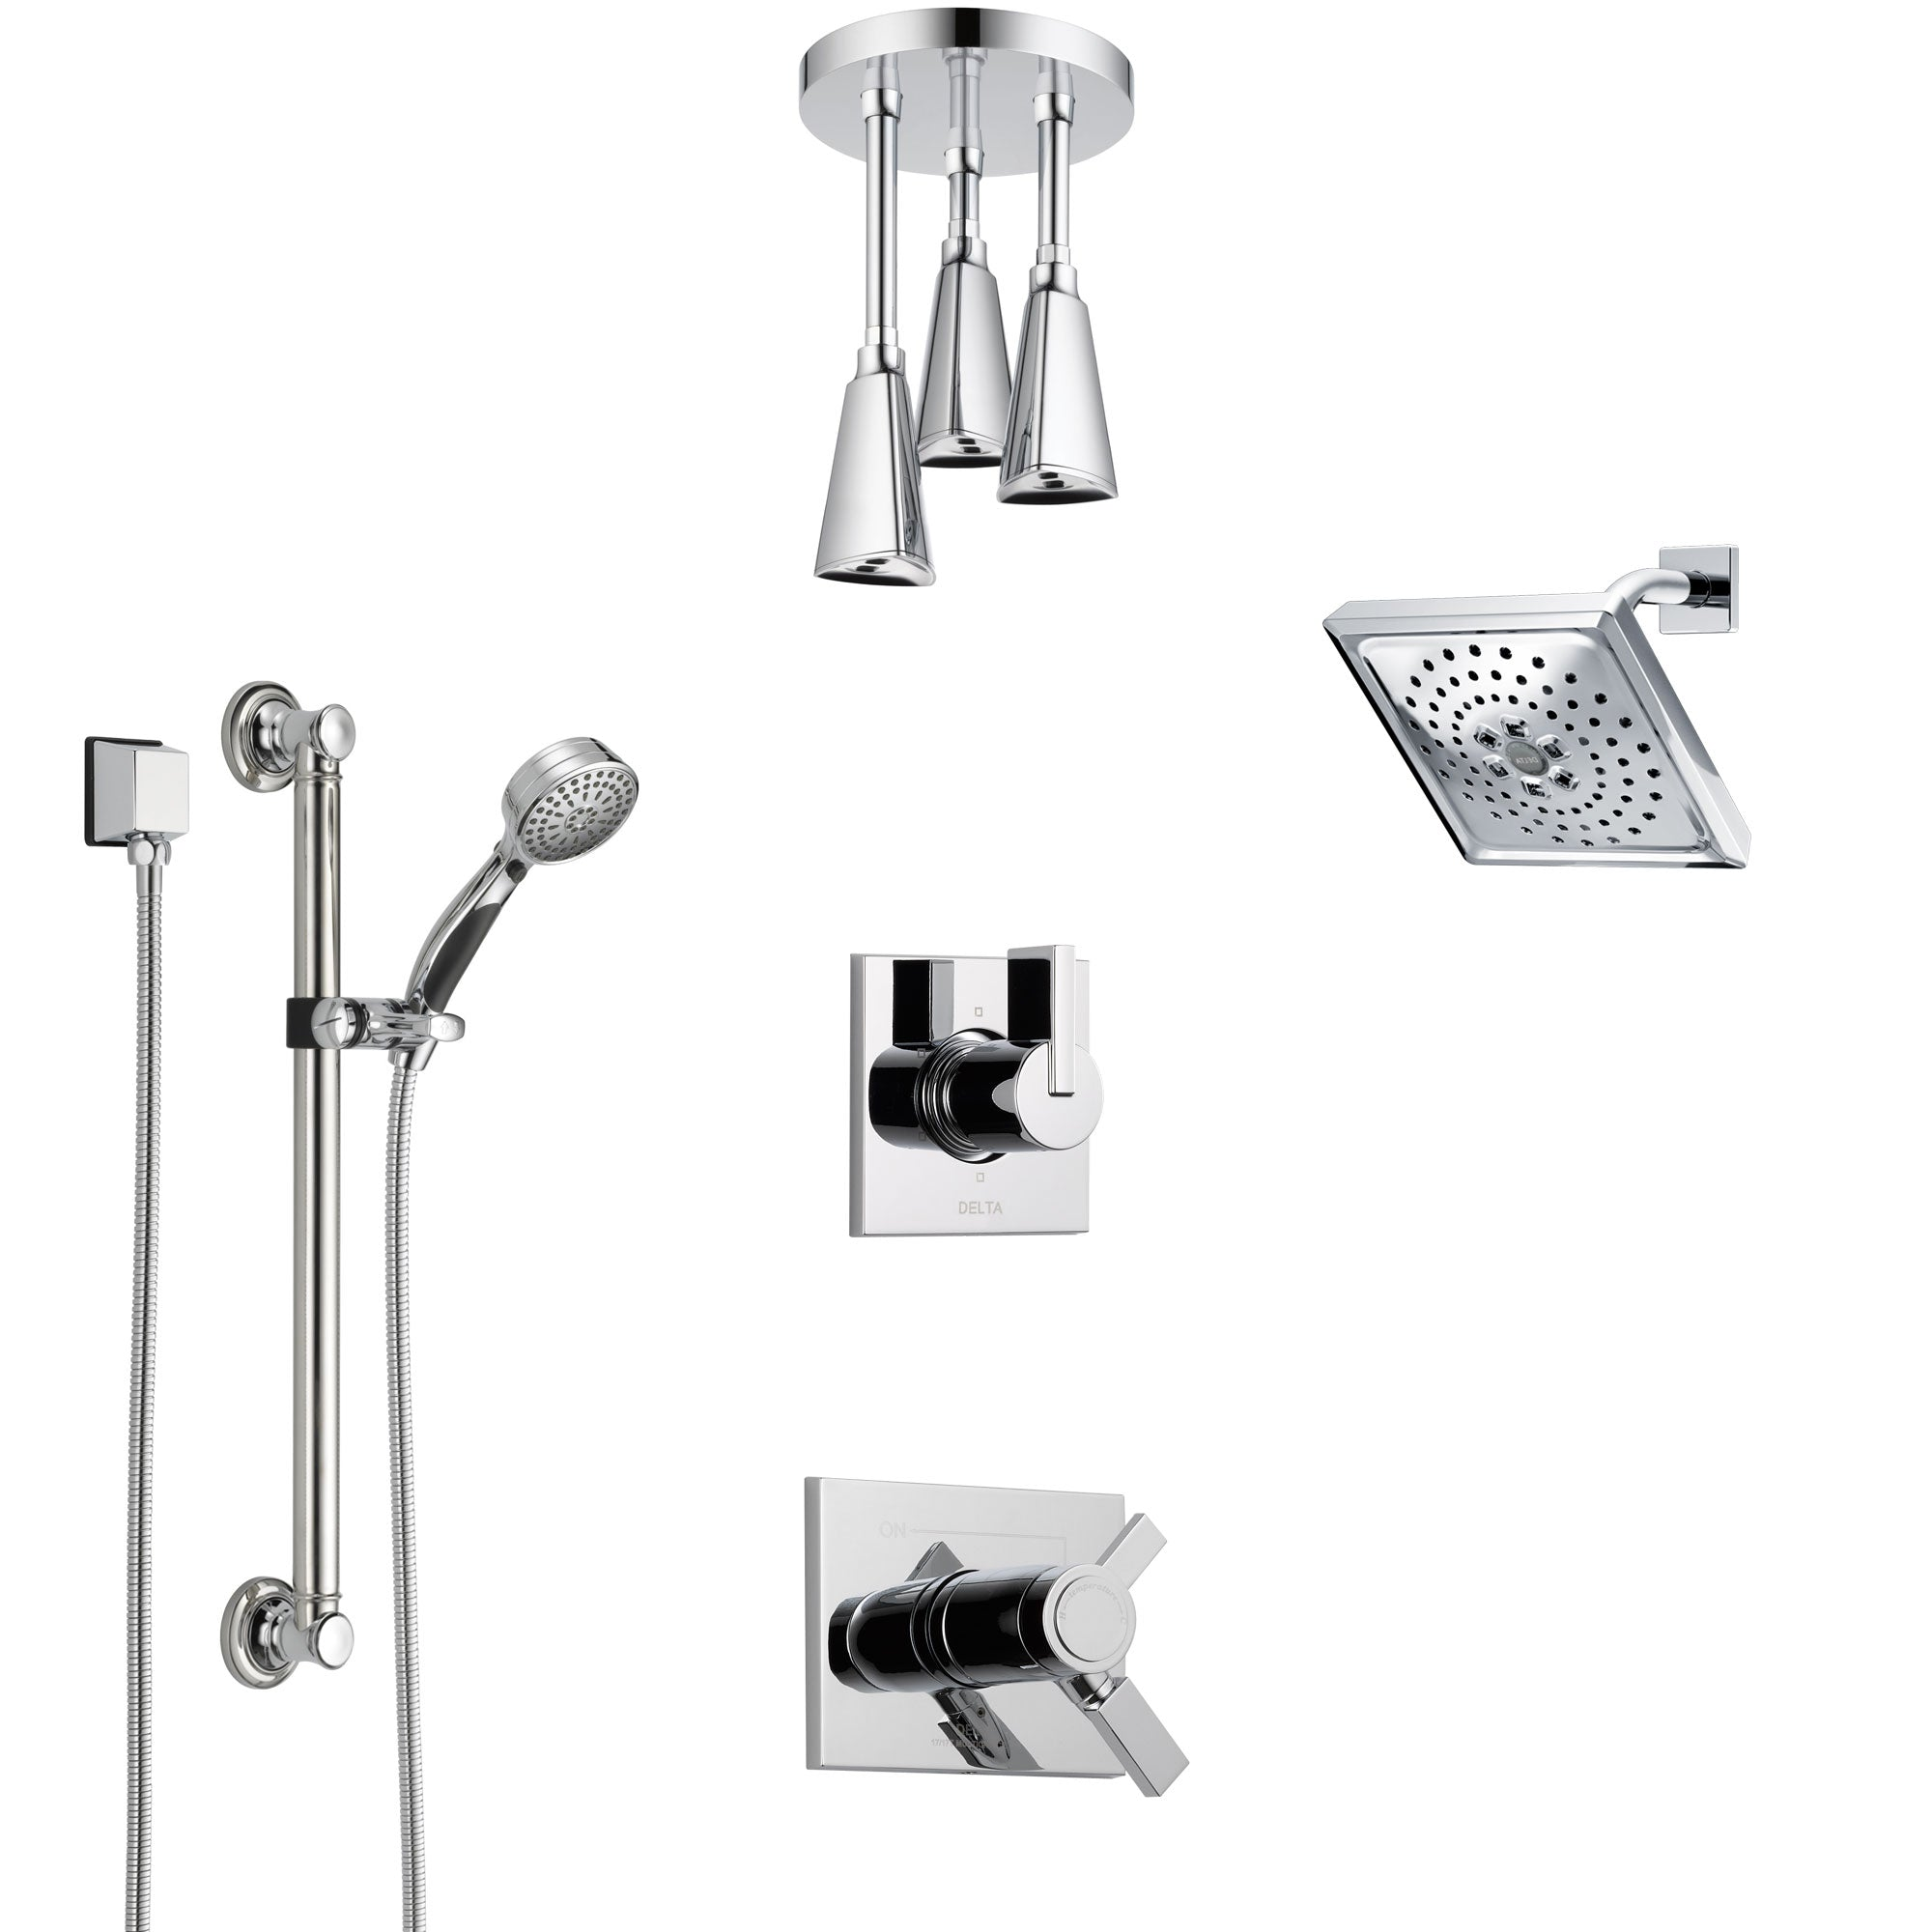 Delta Vero Chrome Shower System with Dual Thermostatic Control, Diverter, Showerhead, Ceiling Mount Showerhead, and Grab Bar Hand Shower SS17T5327